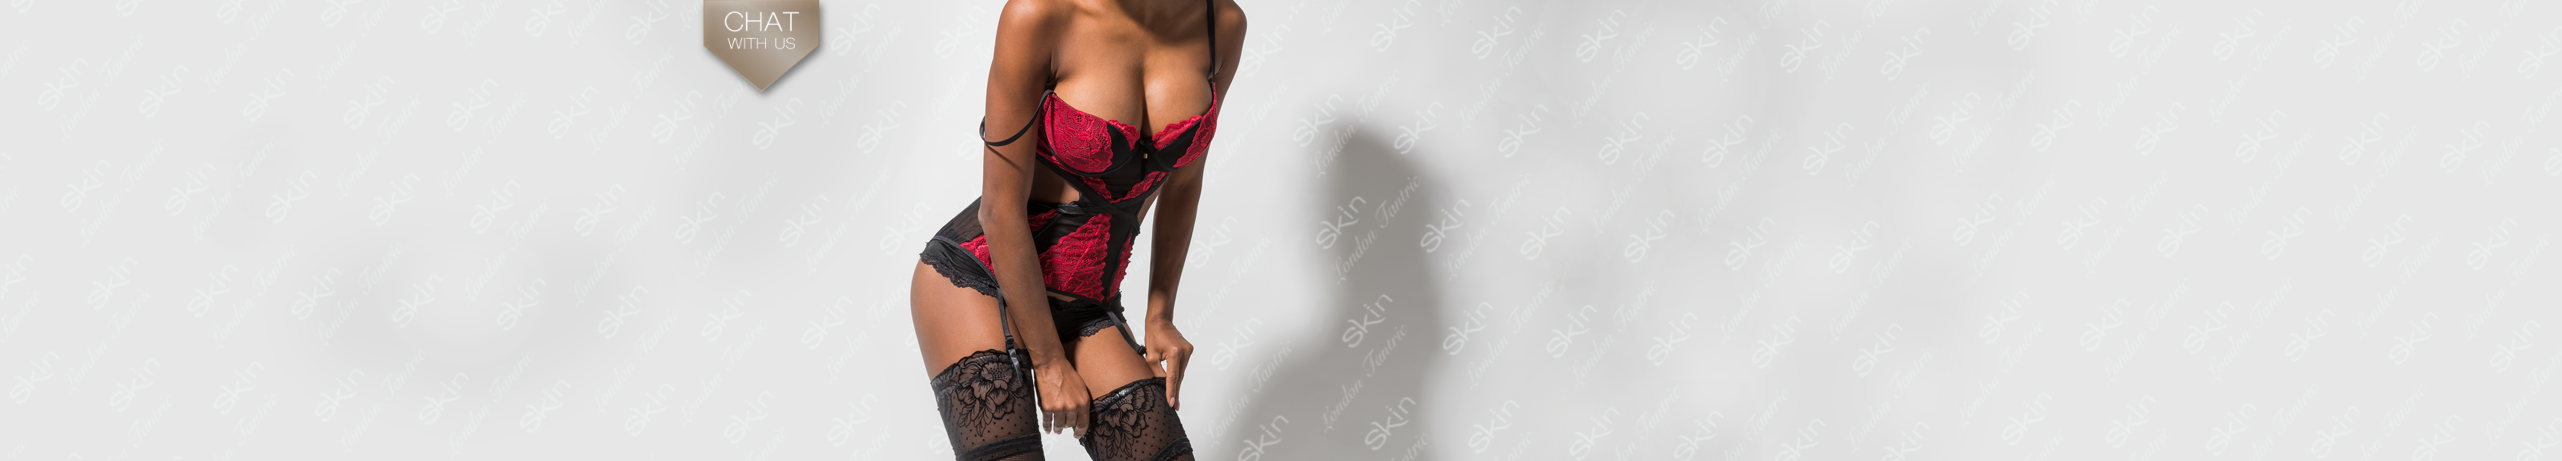 Short notice sensual massage in London banner